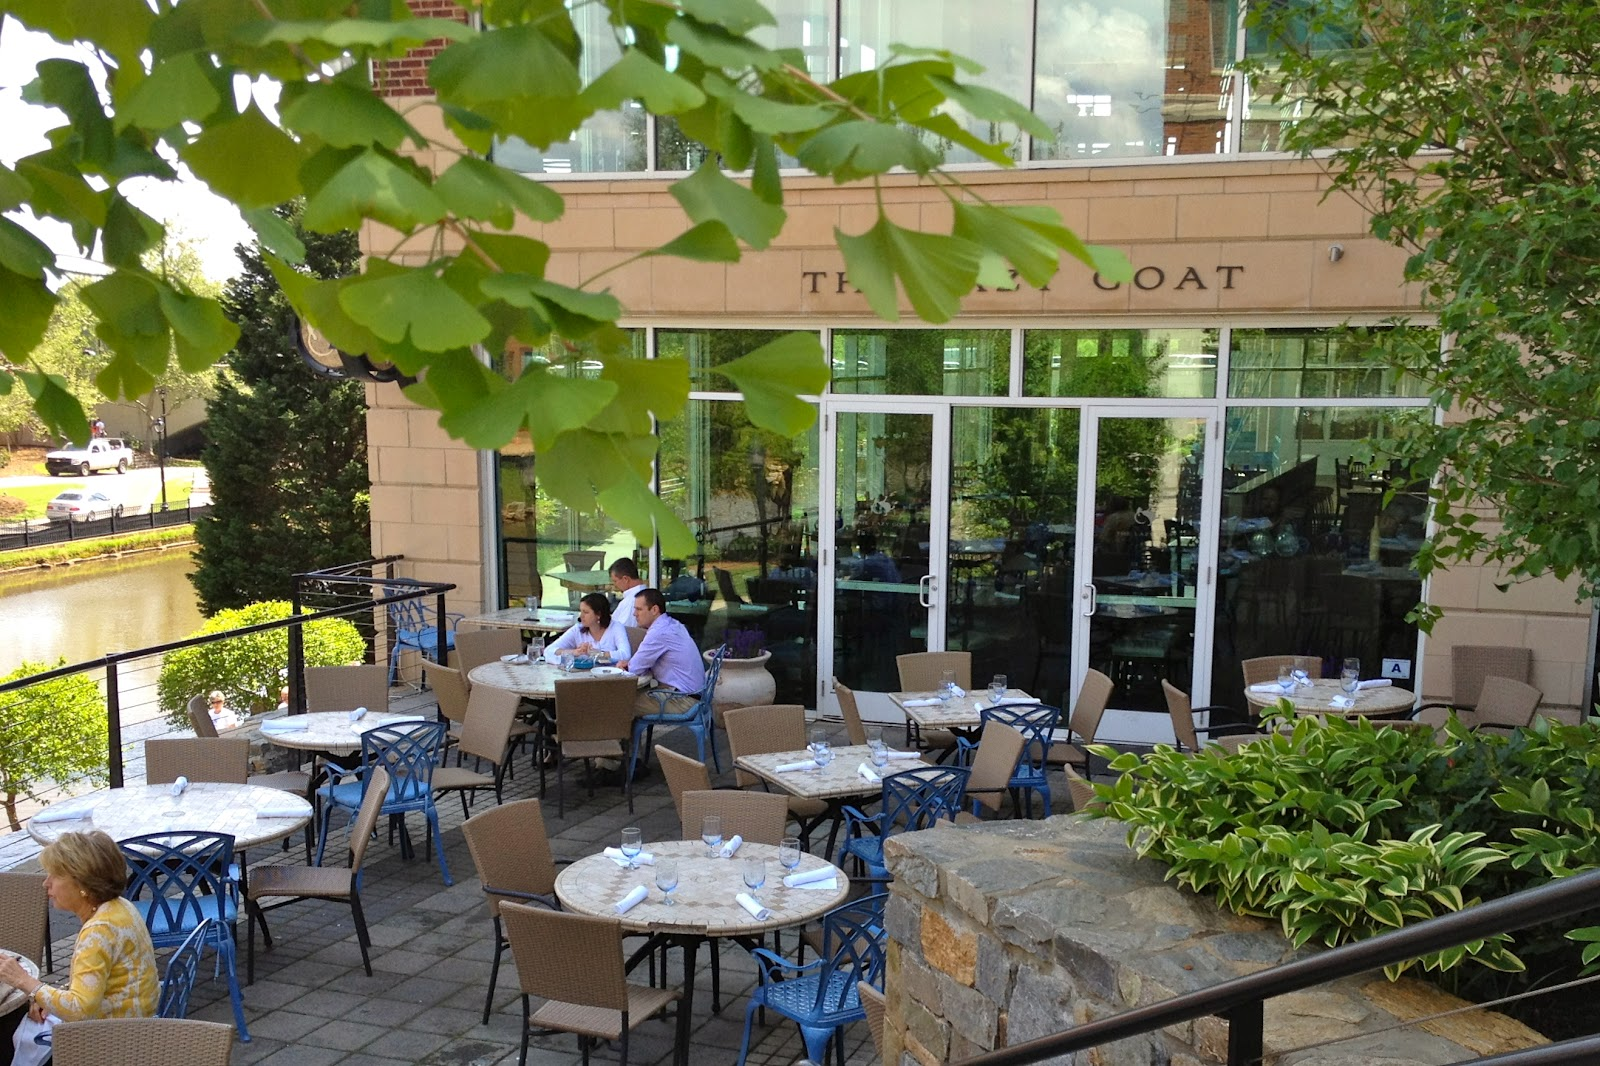 The Patio At Lazy Goat